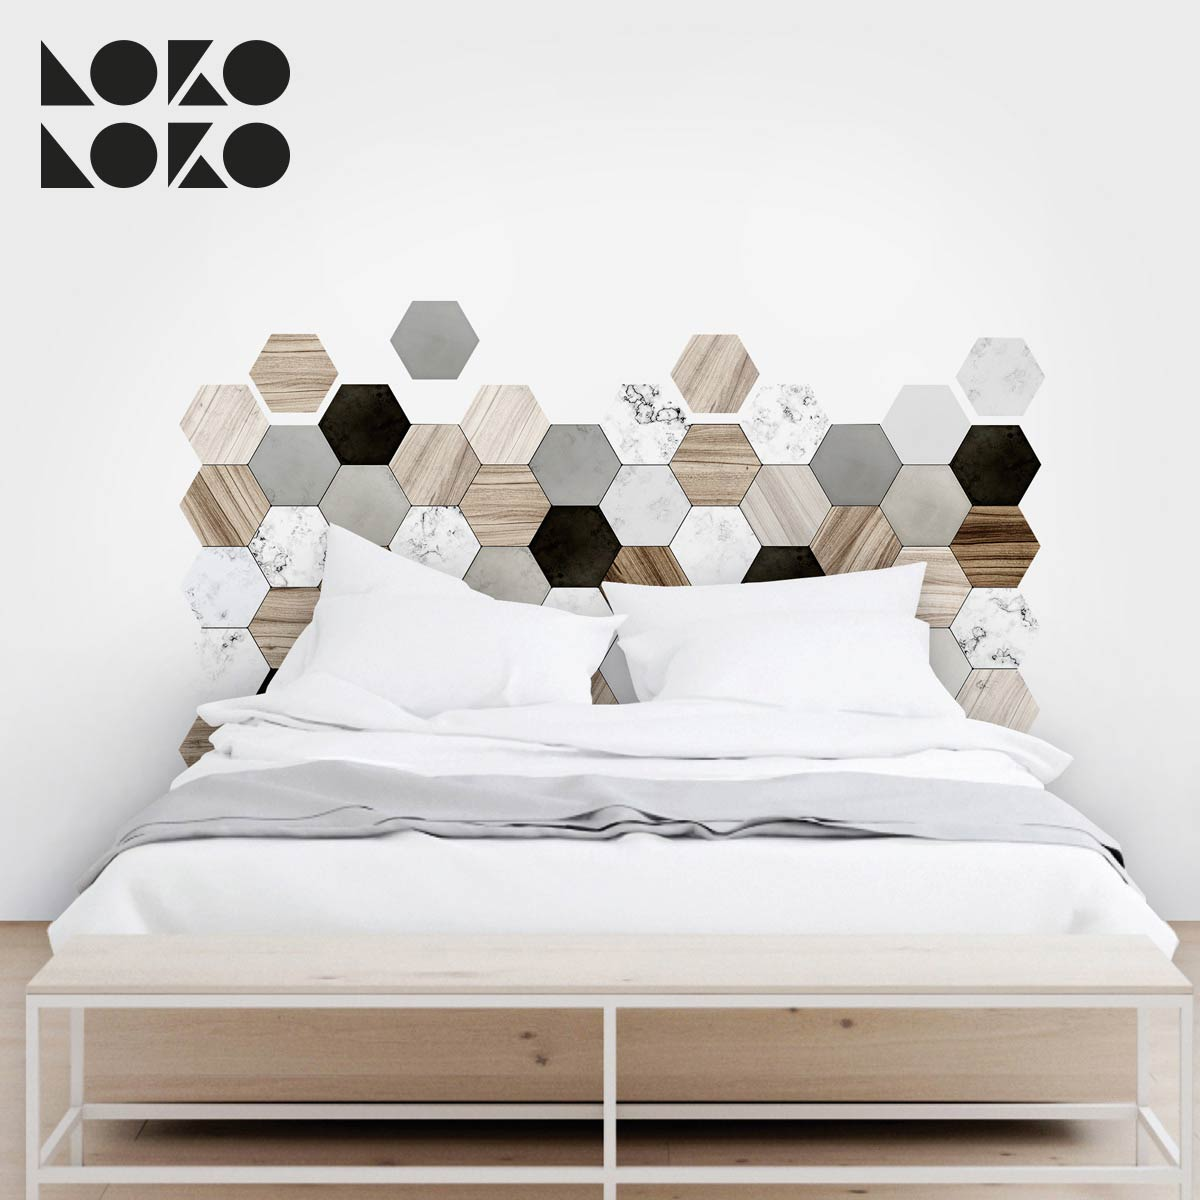 15 ideas originales para cabeceros de cama con vinilos for Decoracion paredes en vinilo